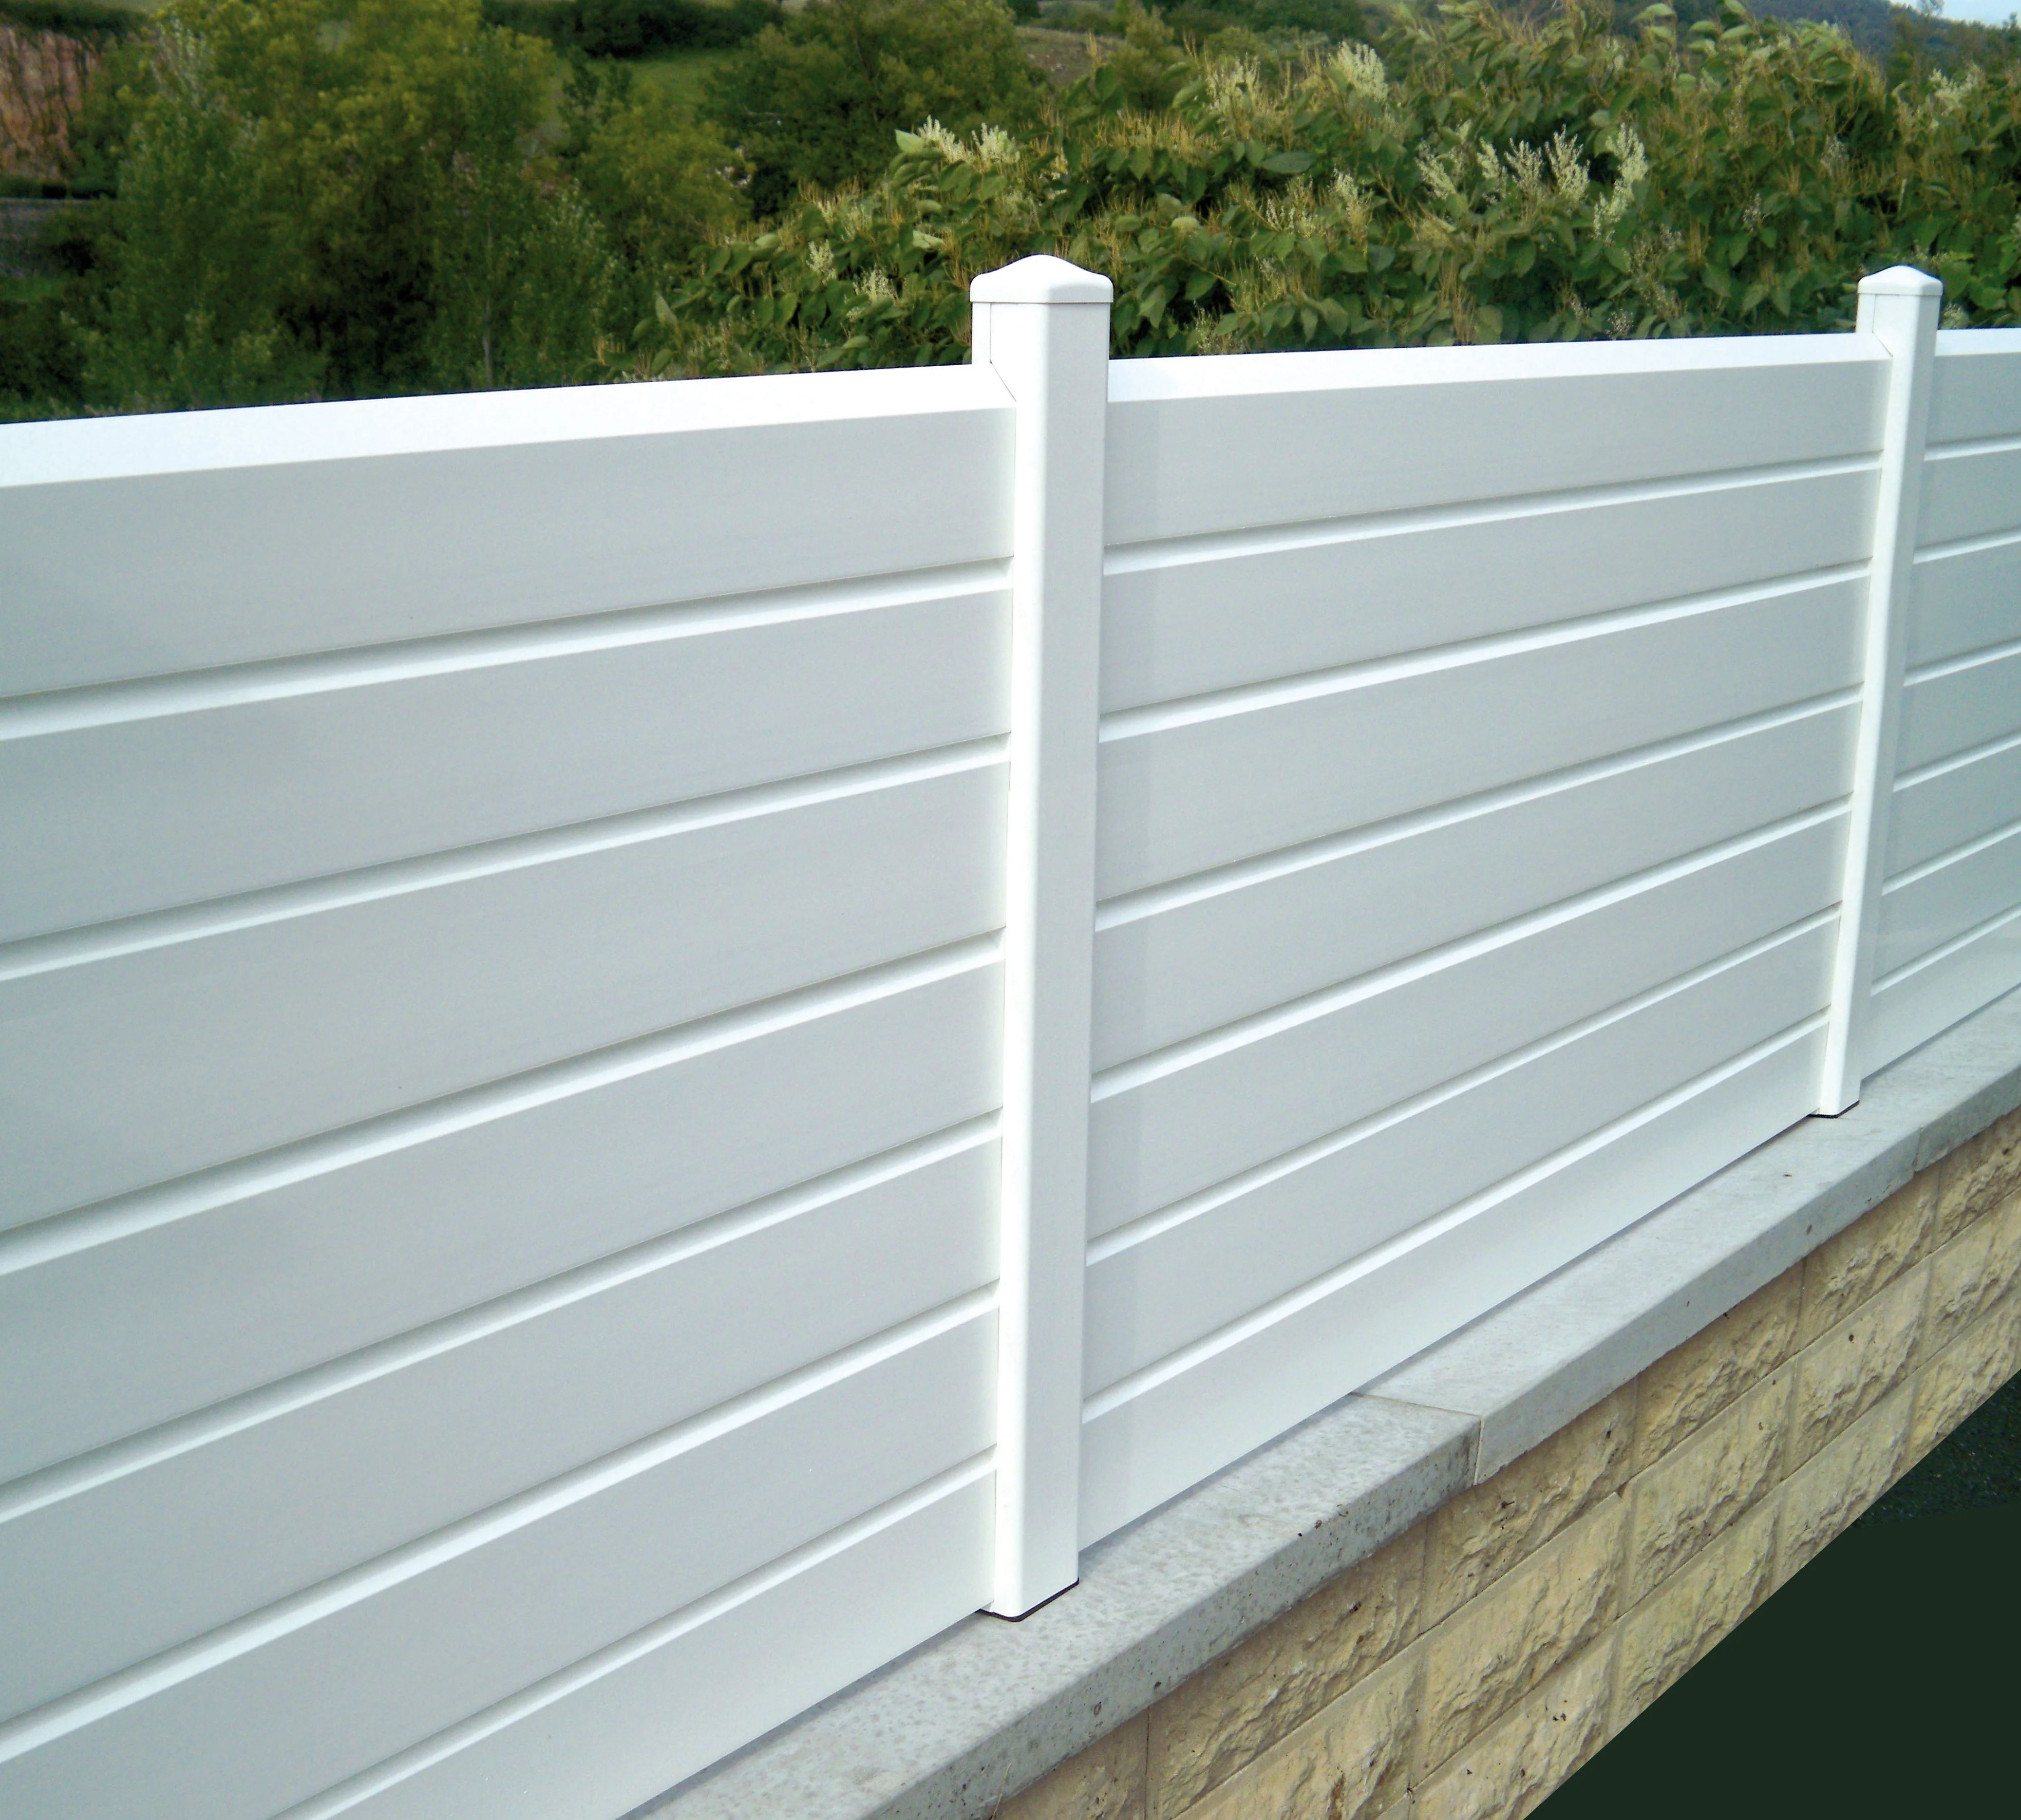 Cloture A Composer Pvc Littoral Persienne Blanc Leroy Merlin